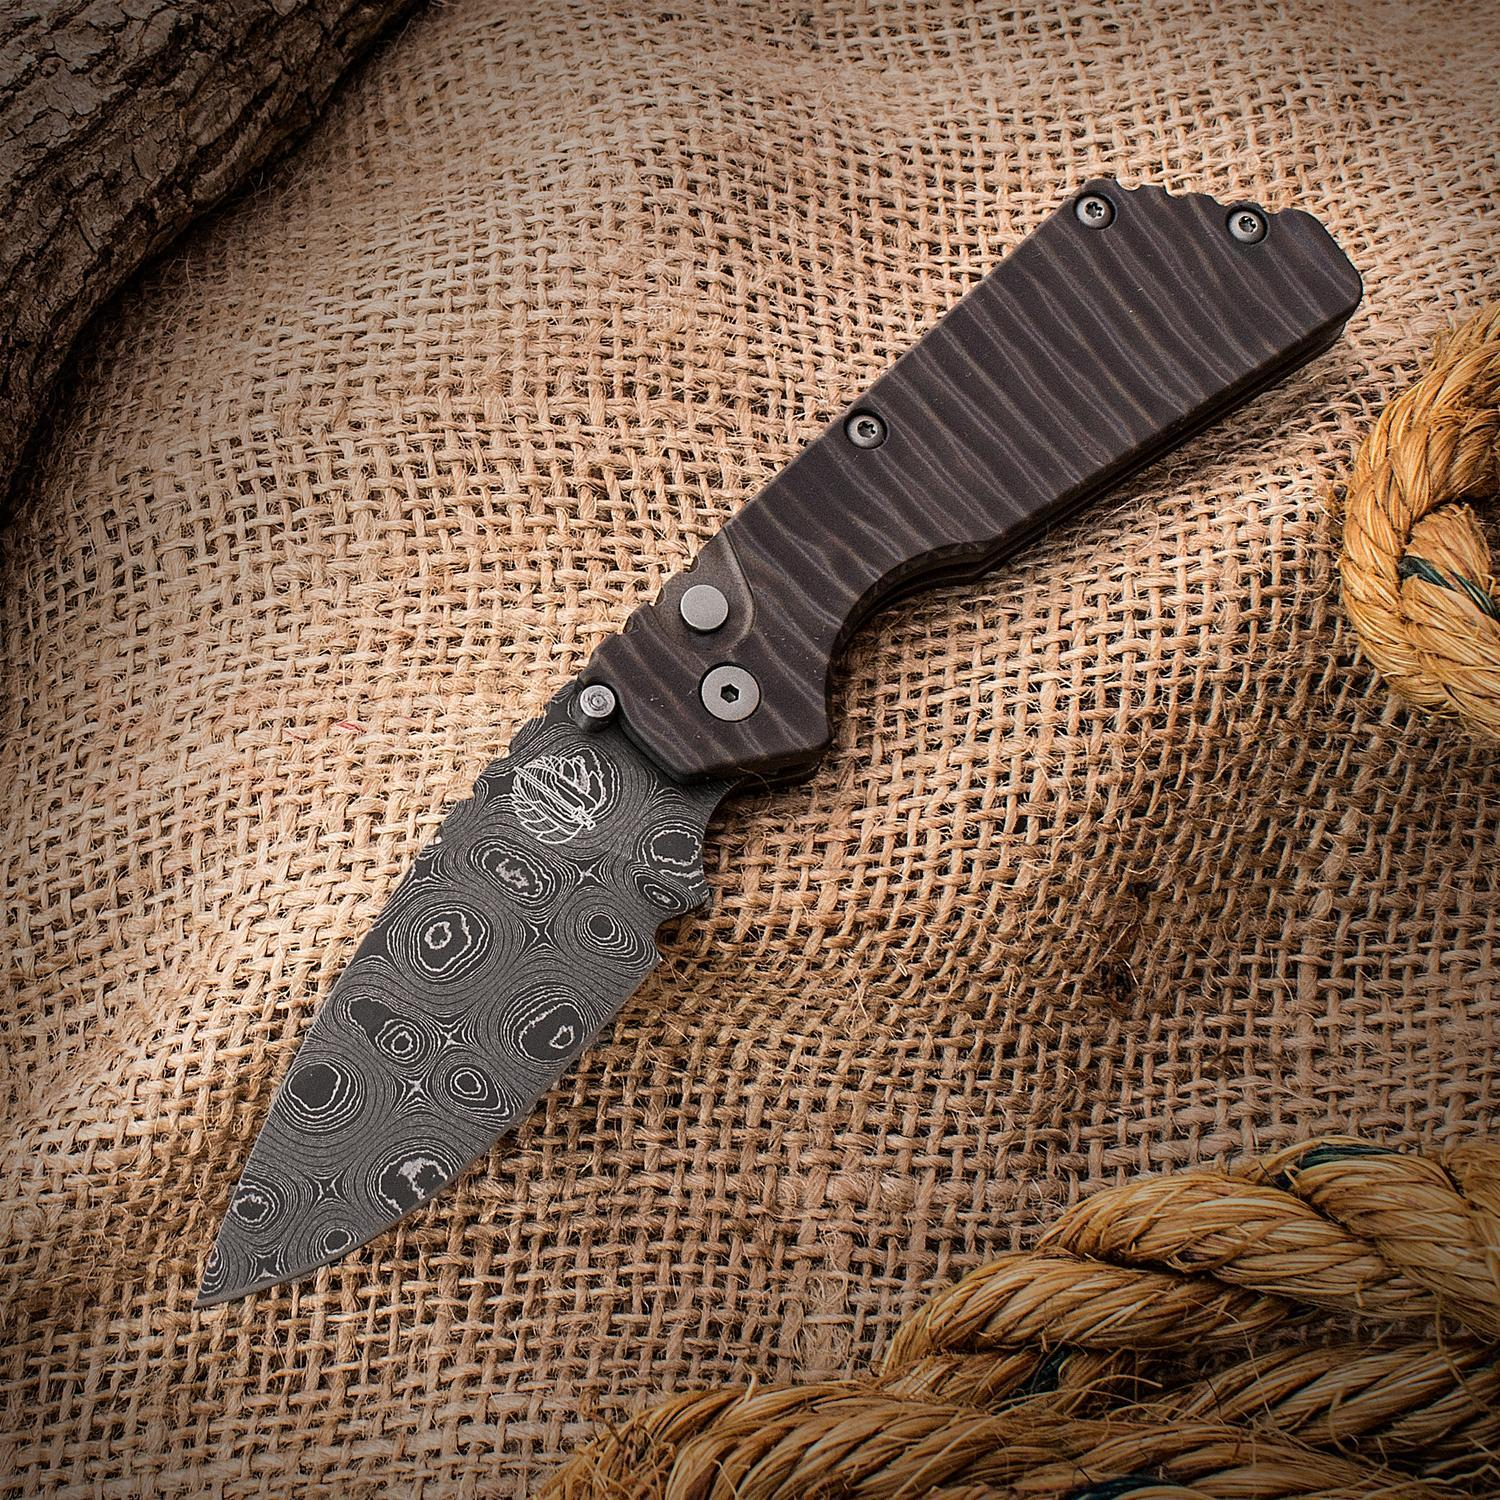 Автоматический складной нож Pro-Strider SnG Auto, Chad Nichols Black Eye Stainless Damascus, Flamed Titanium HandlesРаскладные ножи<br>Автоматический складной нож Pro-Strider SnG Auto, Chad Nichols Black Eye Stainless Damascus, Flamed Titanium Handles<br>